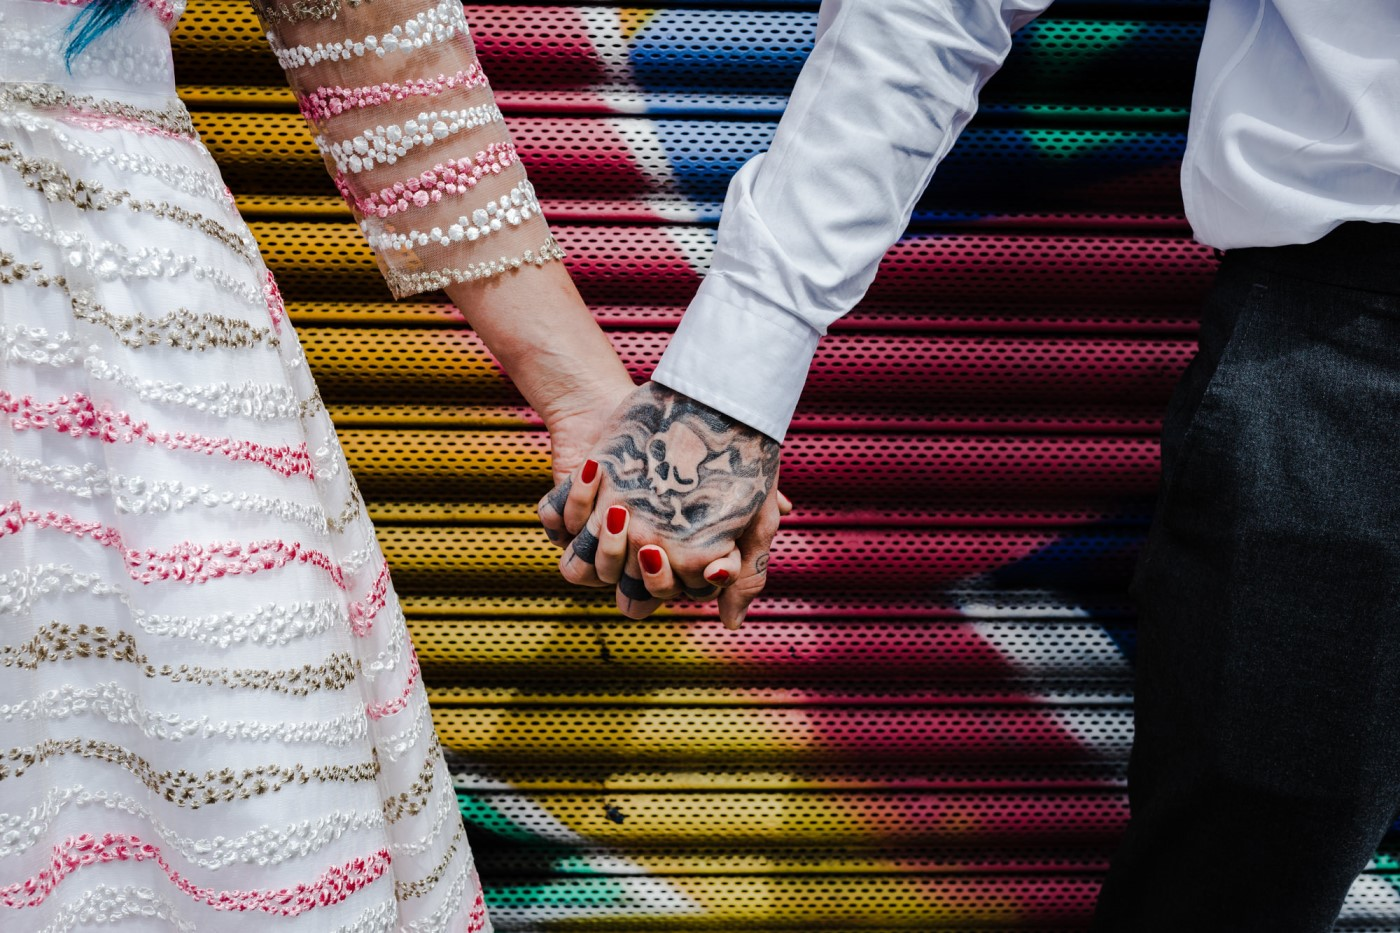 kirsty rockett photography - urban wedding against graffiti holding hands